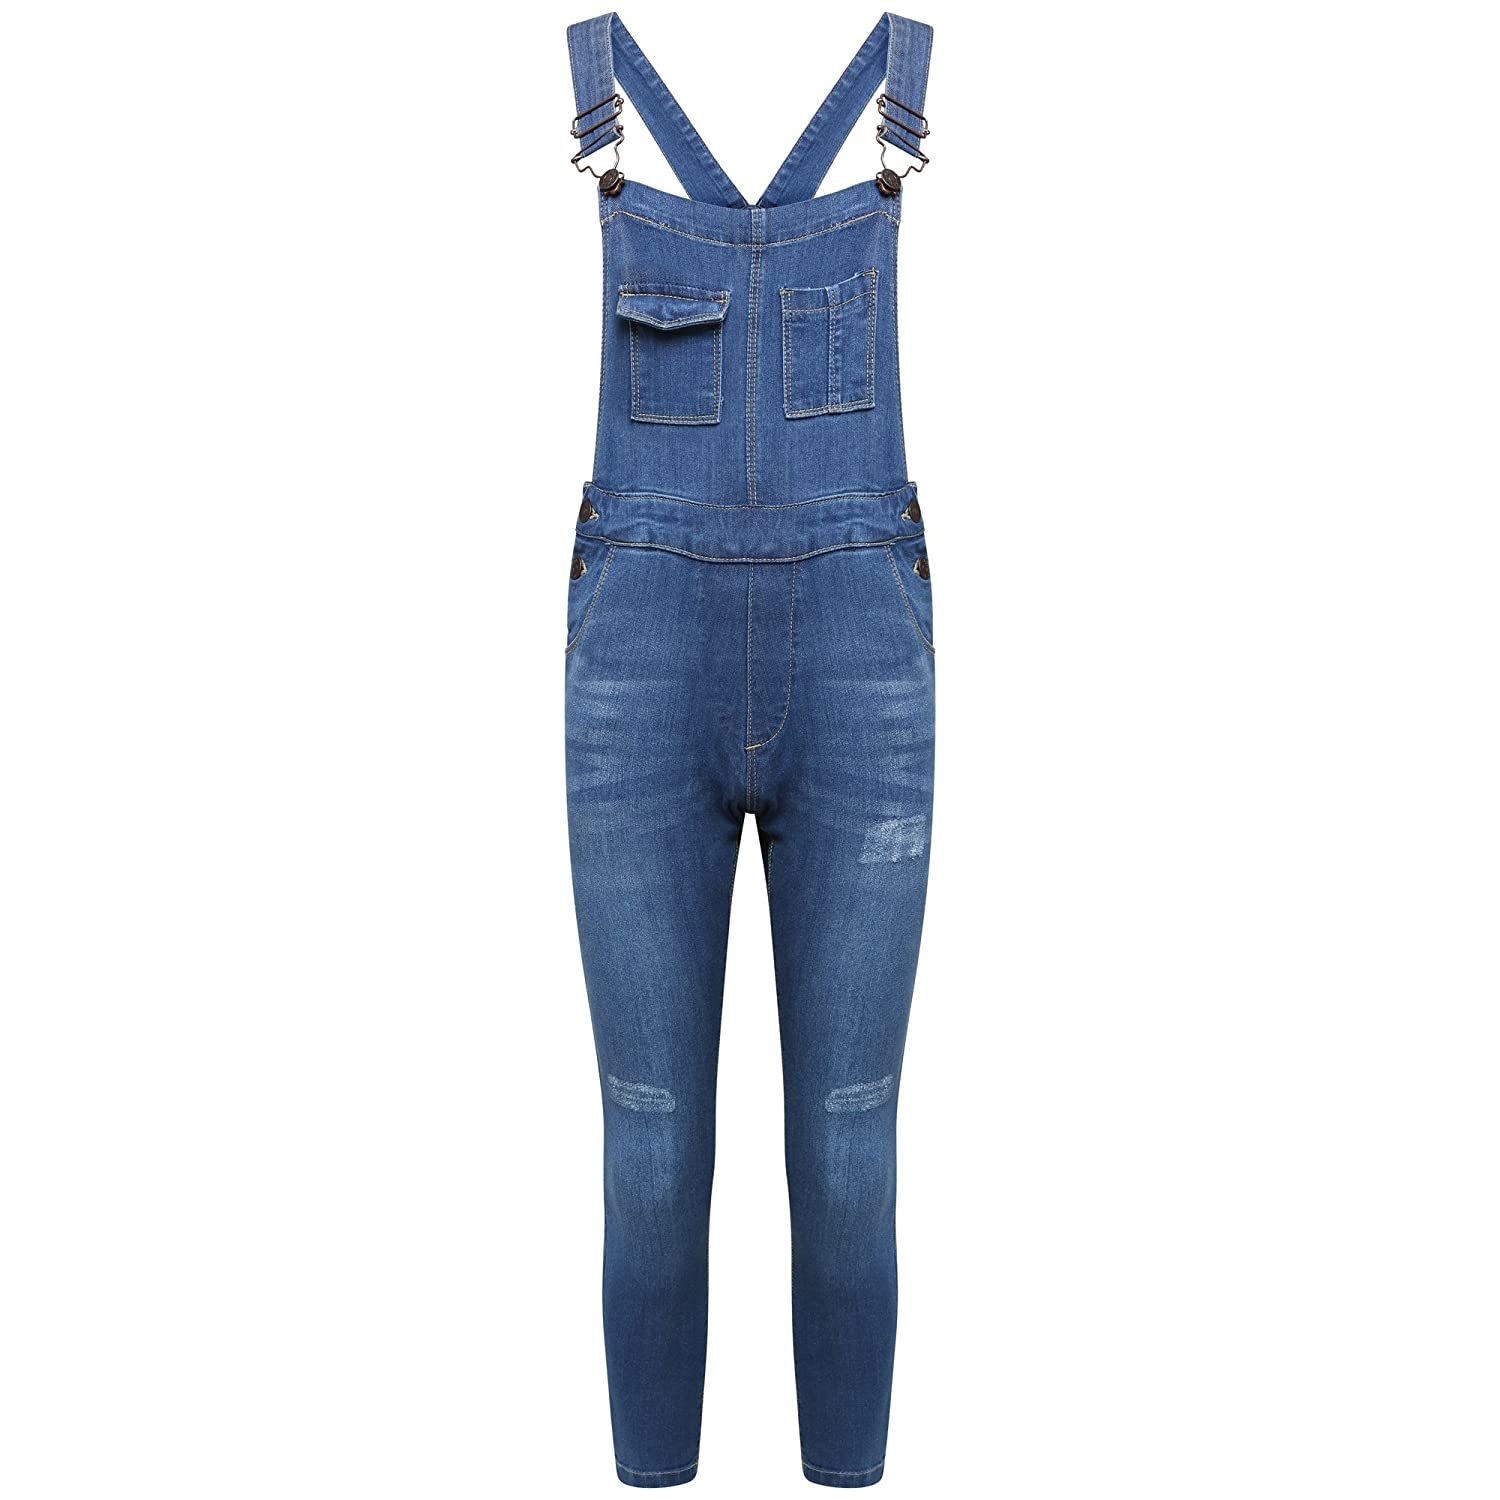 MISS CUTE Girls Denim Dungarees Stretch Fade Blue Wash Slim Fit Skinny Jeans Jumpsuit All In One